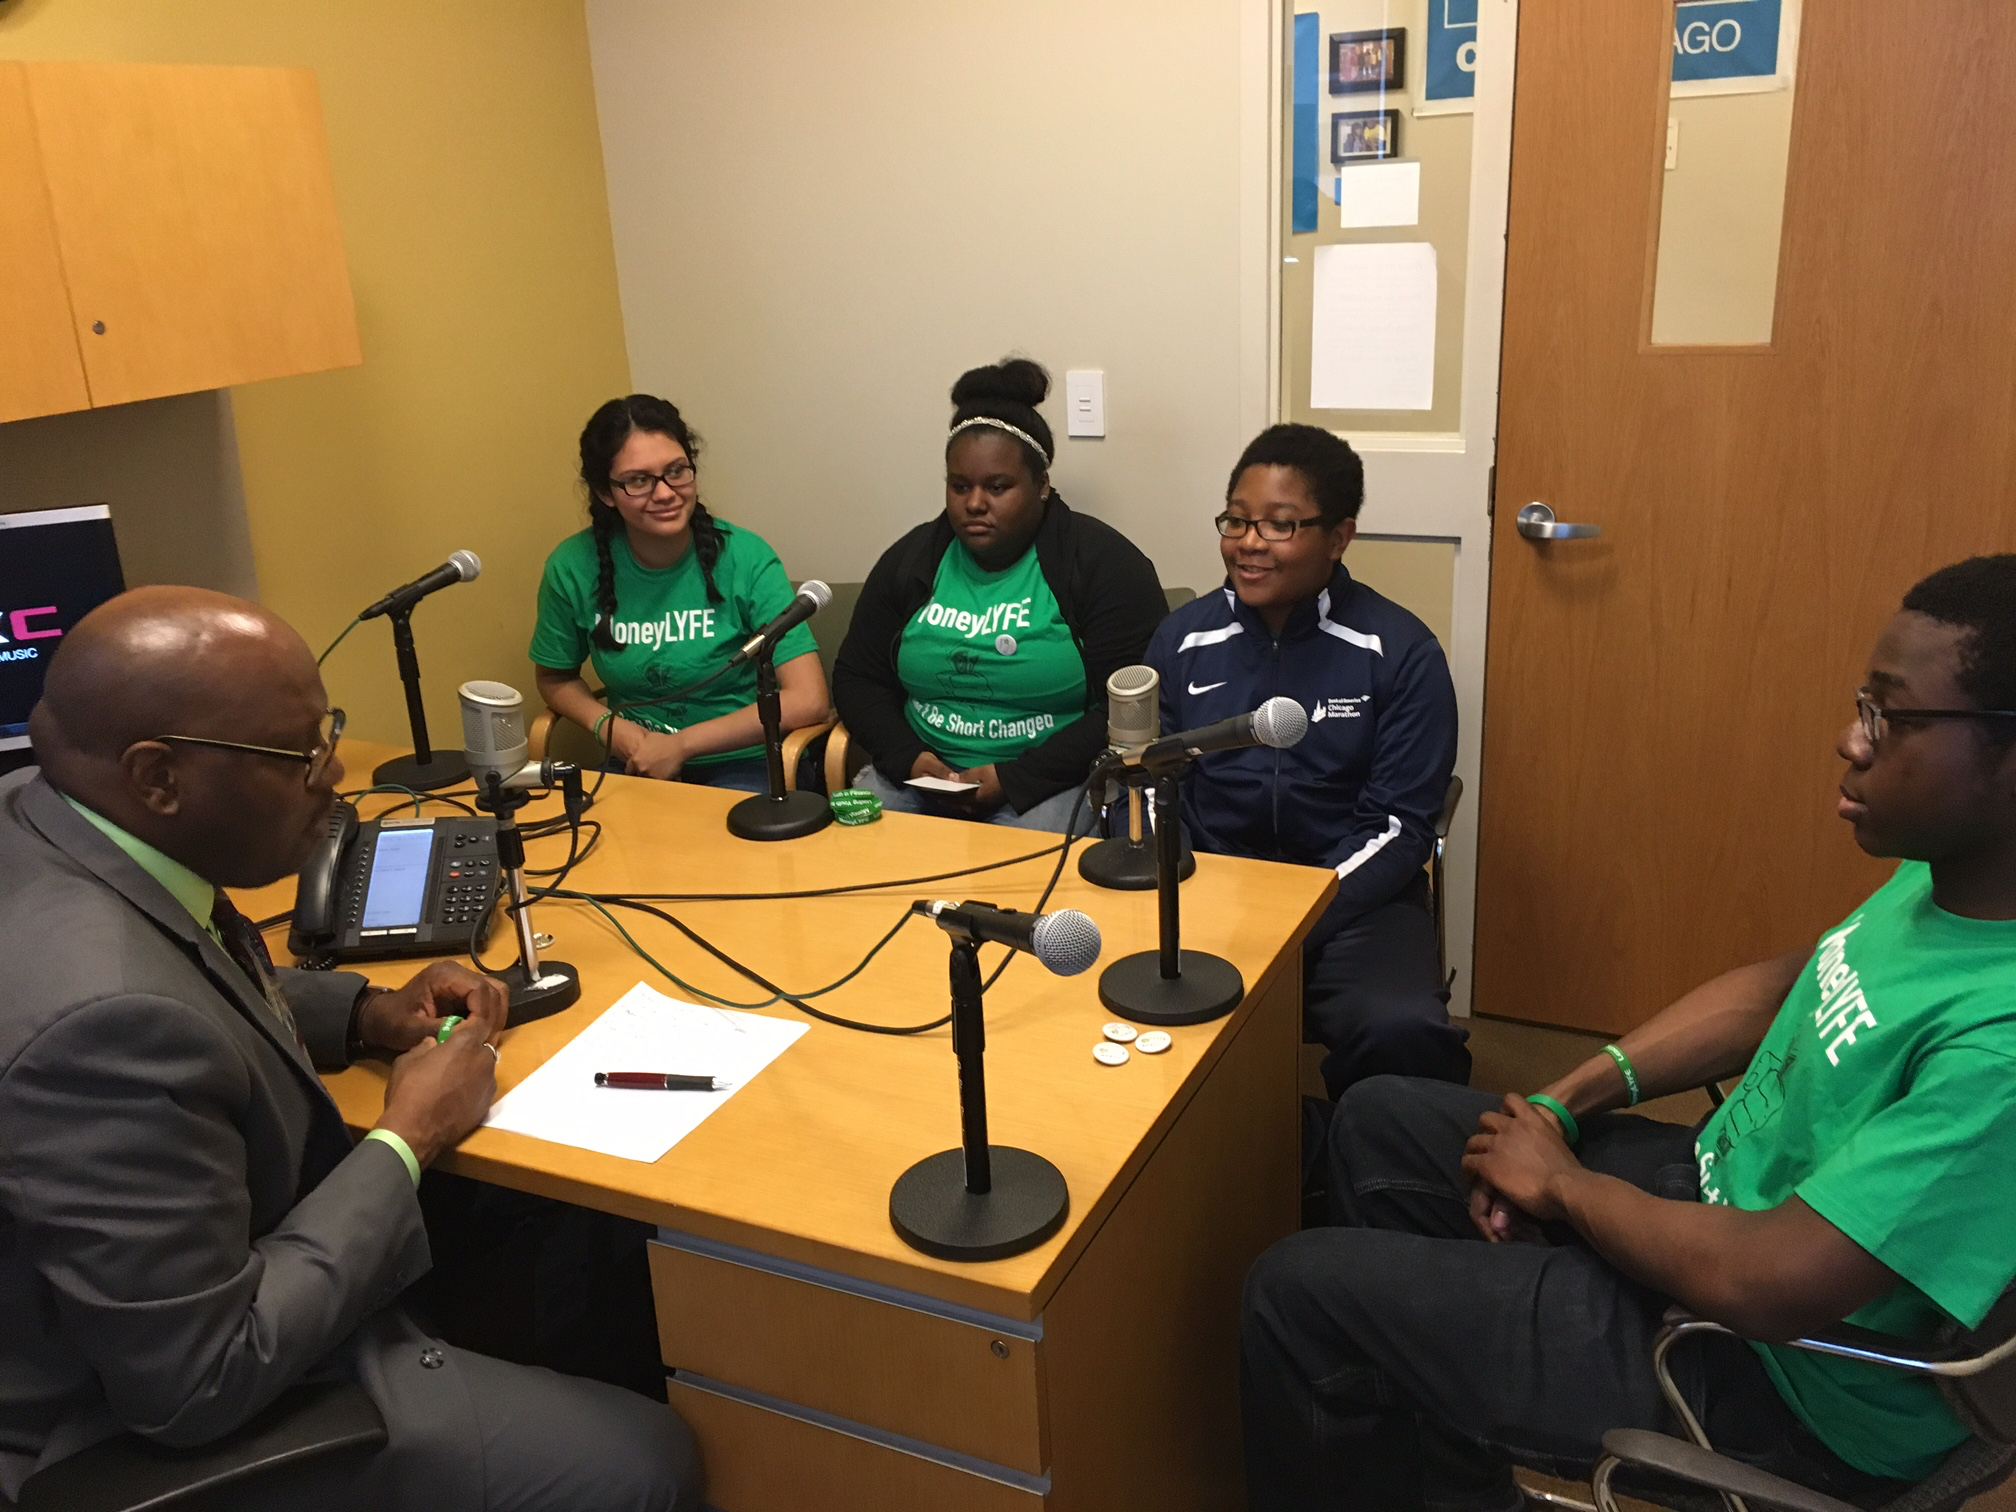 MoneyLYFE team members are interviewed by Dennis Snipe of WKKC 89.3 FM, Kennedy King College, Chicago